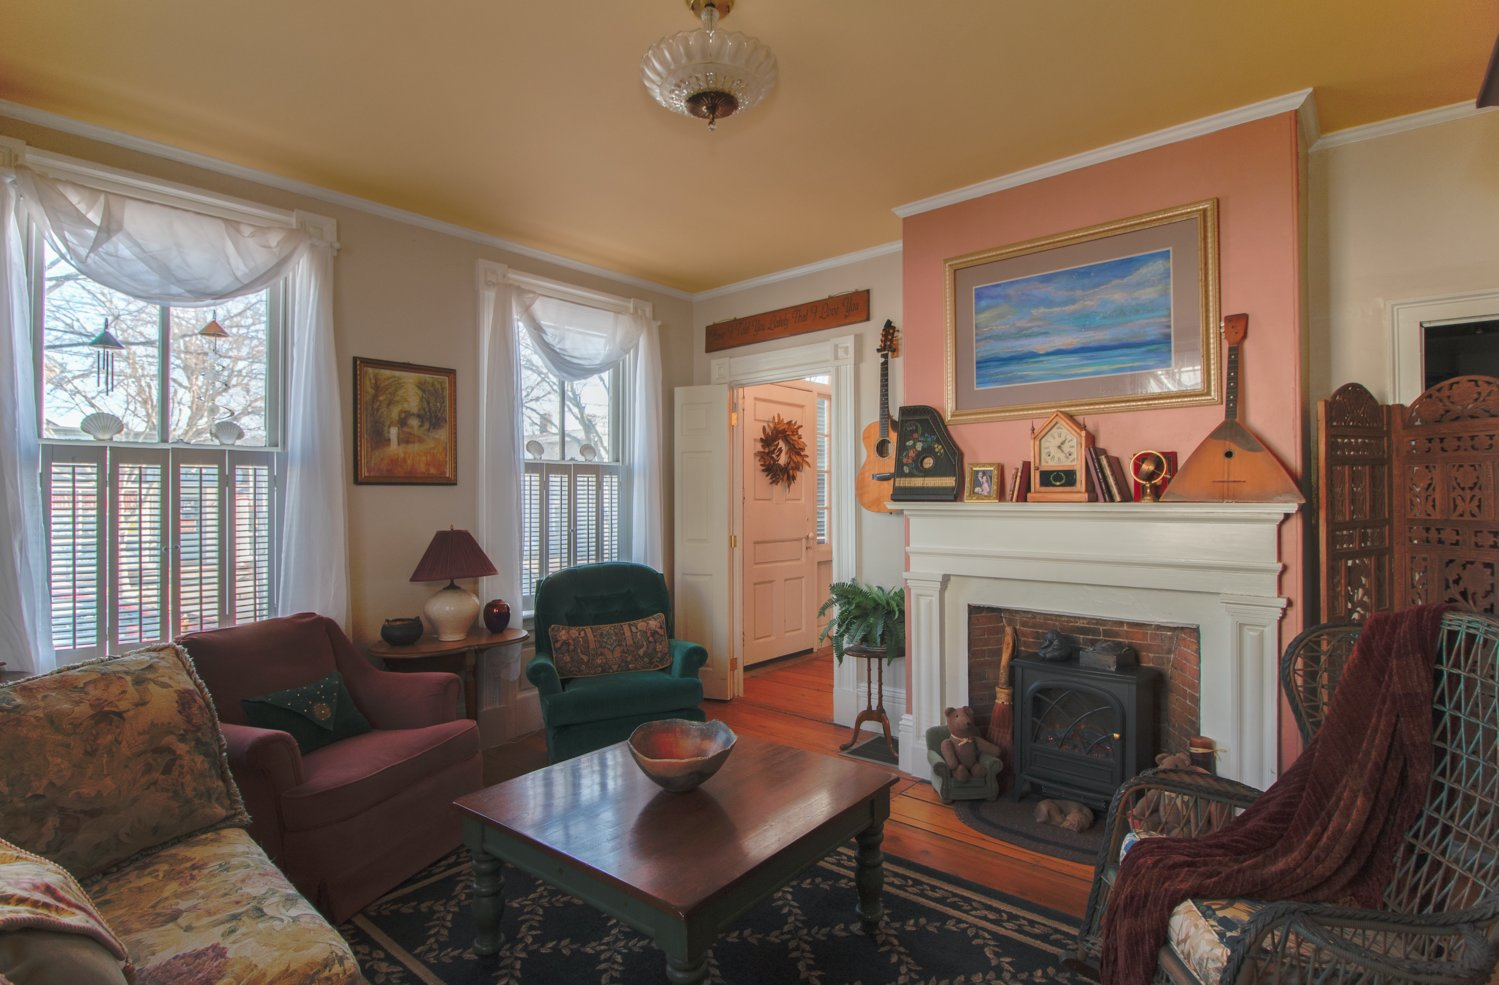 The narrow wall above the fireplace, painted a muted salmon, provides a striking backdrop for the seascape painting while connecting with the floors below